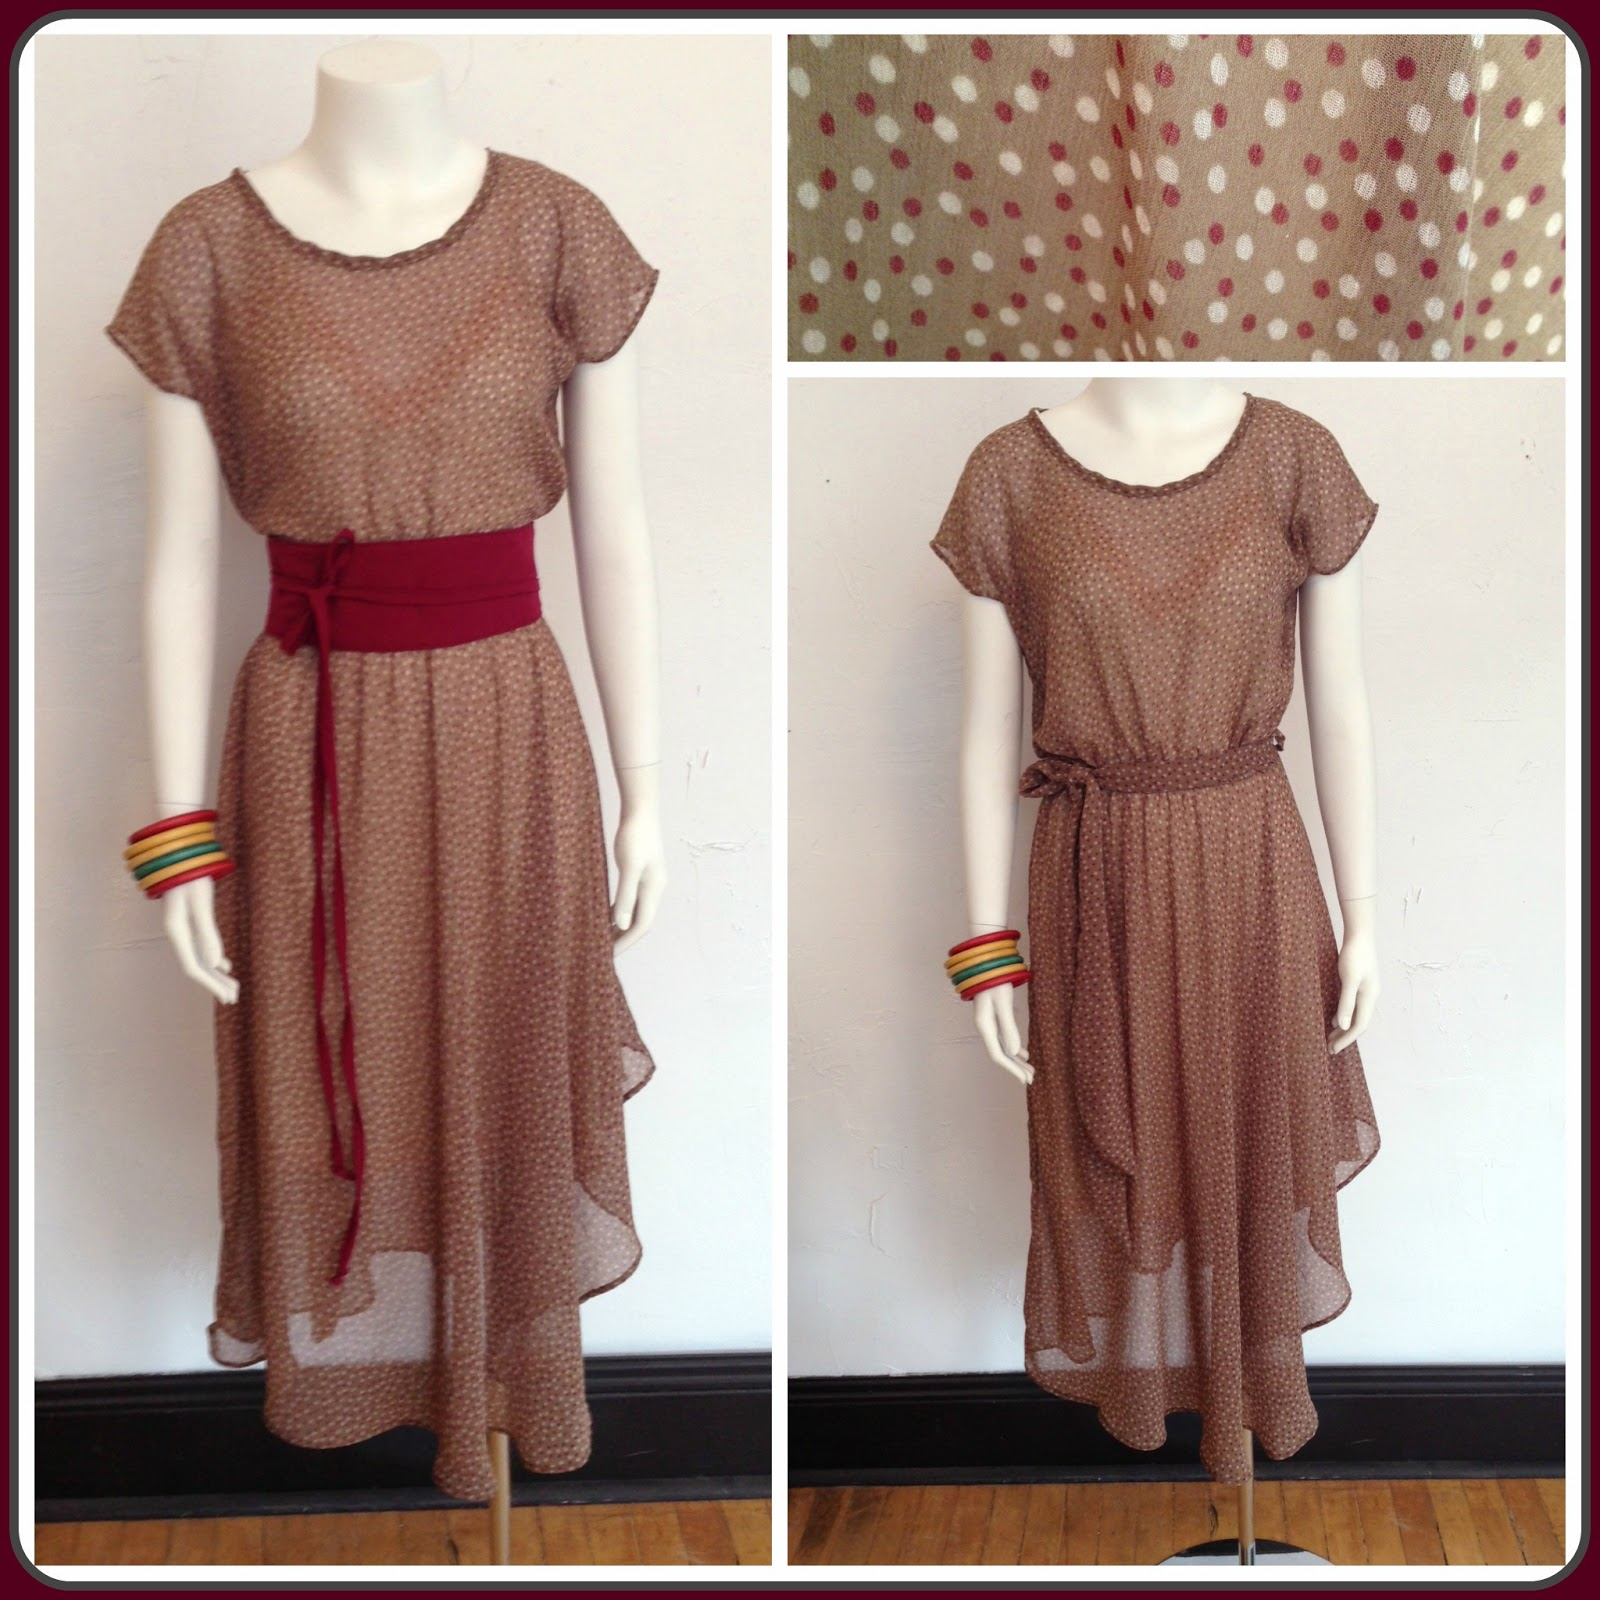 New Nora dress by Sarah Bibb ($190), Obi belt by Sarah Bibb ($40), and Ava slip by Sarah Bibb ($65-$74) at Folly